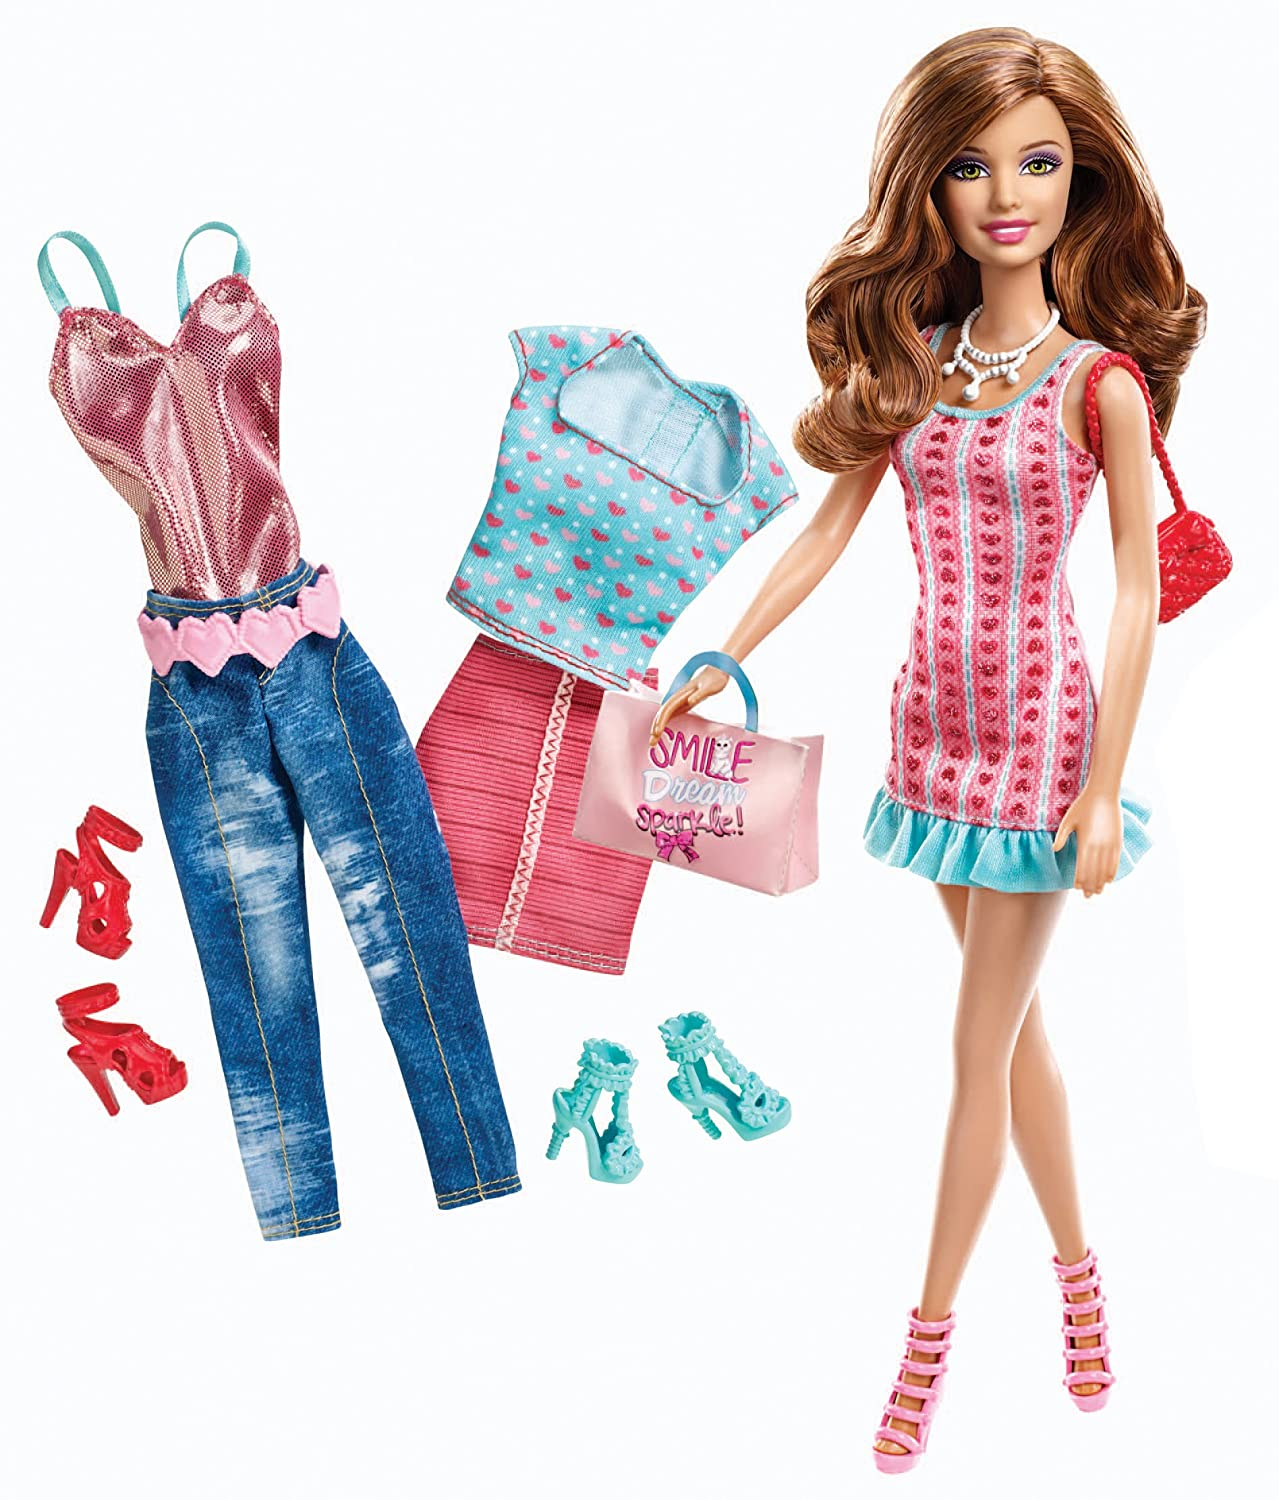 Teresa Fashionista Barbie Barbie Doll and Fashions